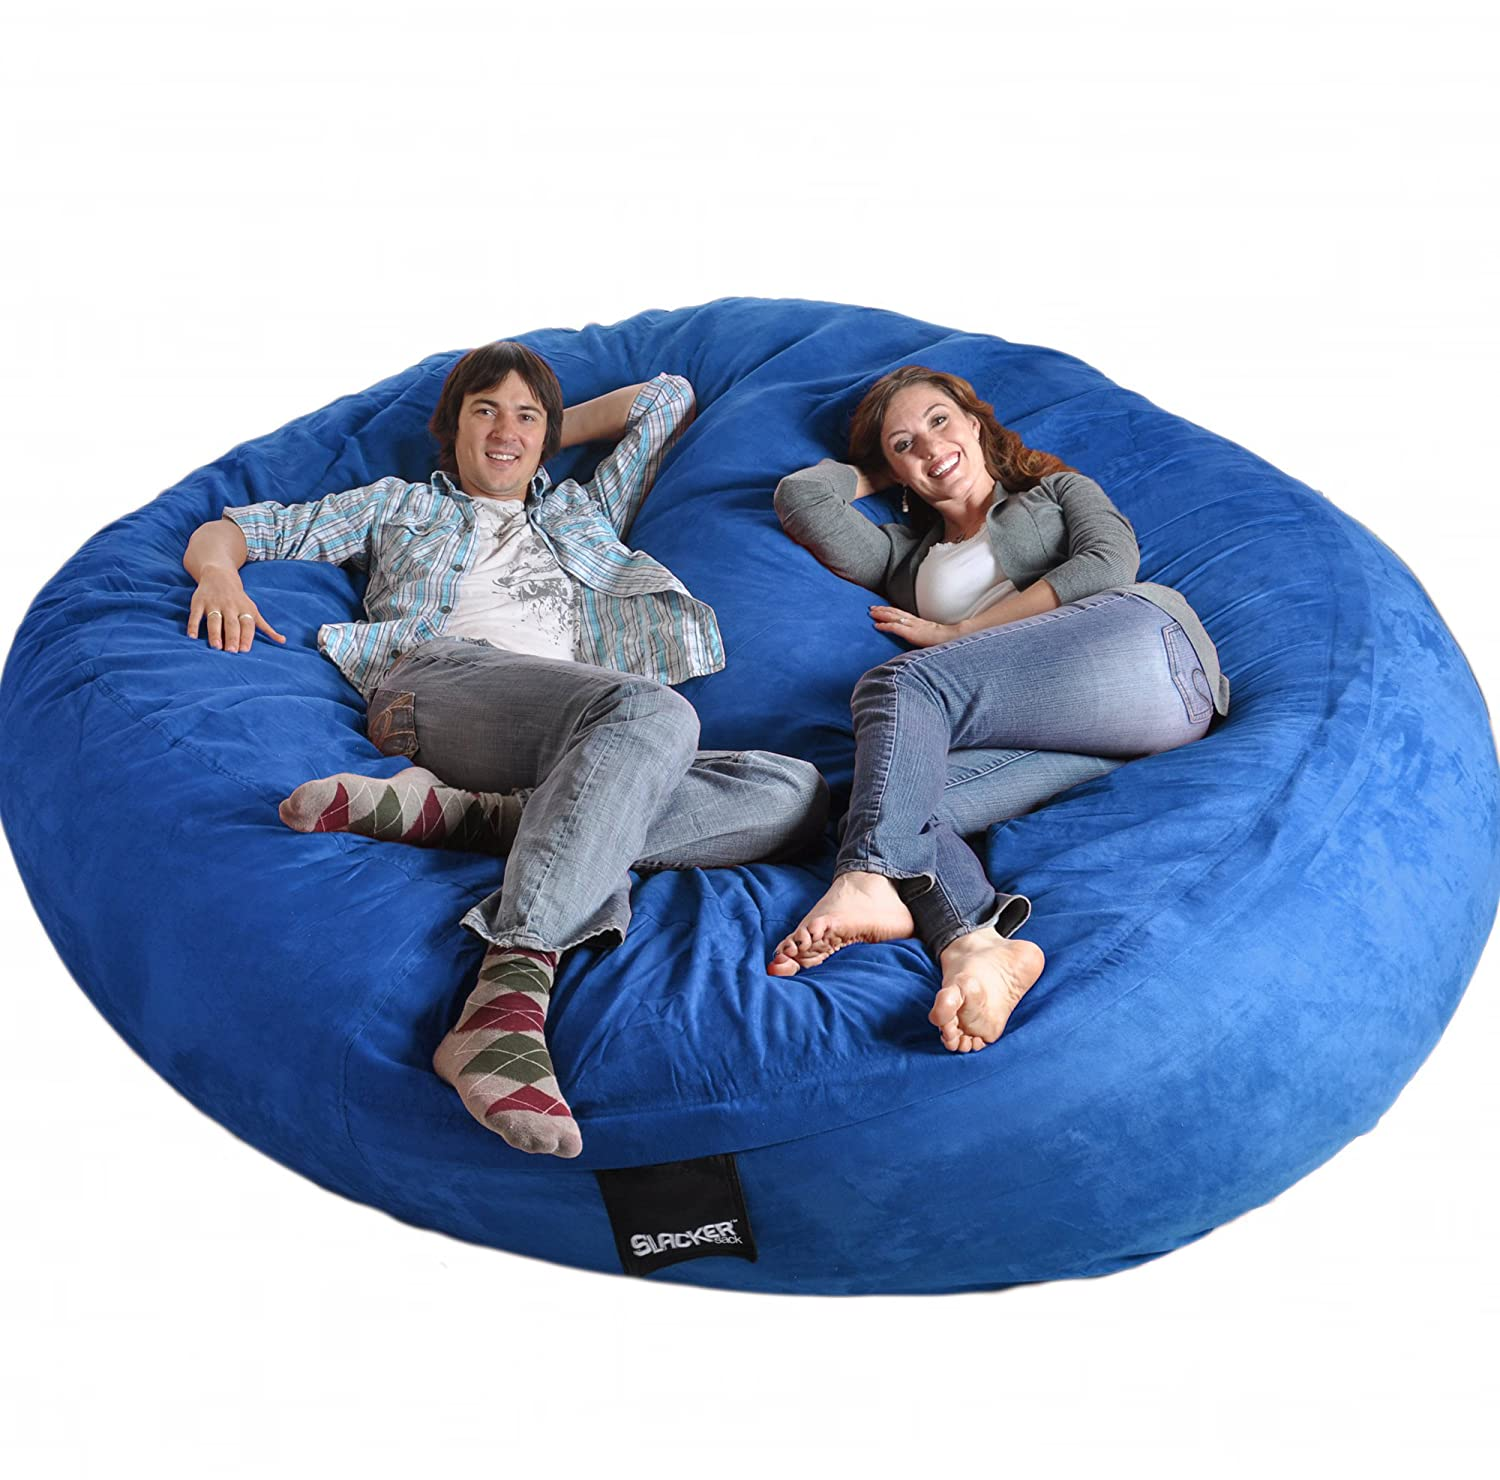 Amazon 8 Feet Round Royal Blue XXXL Foam Bean Bag Chair